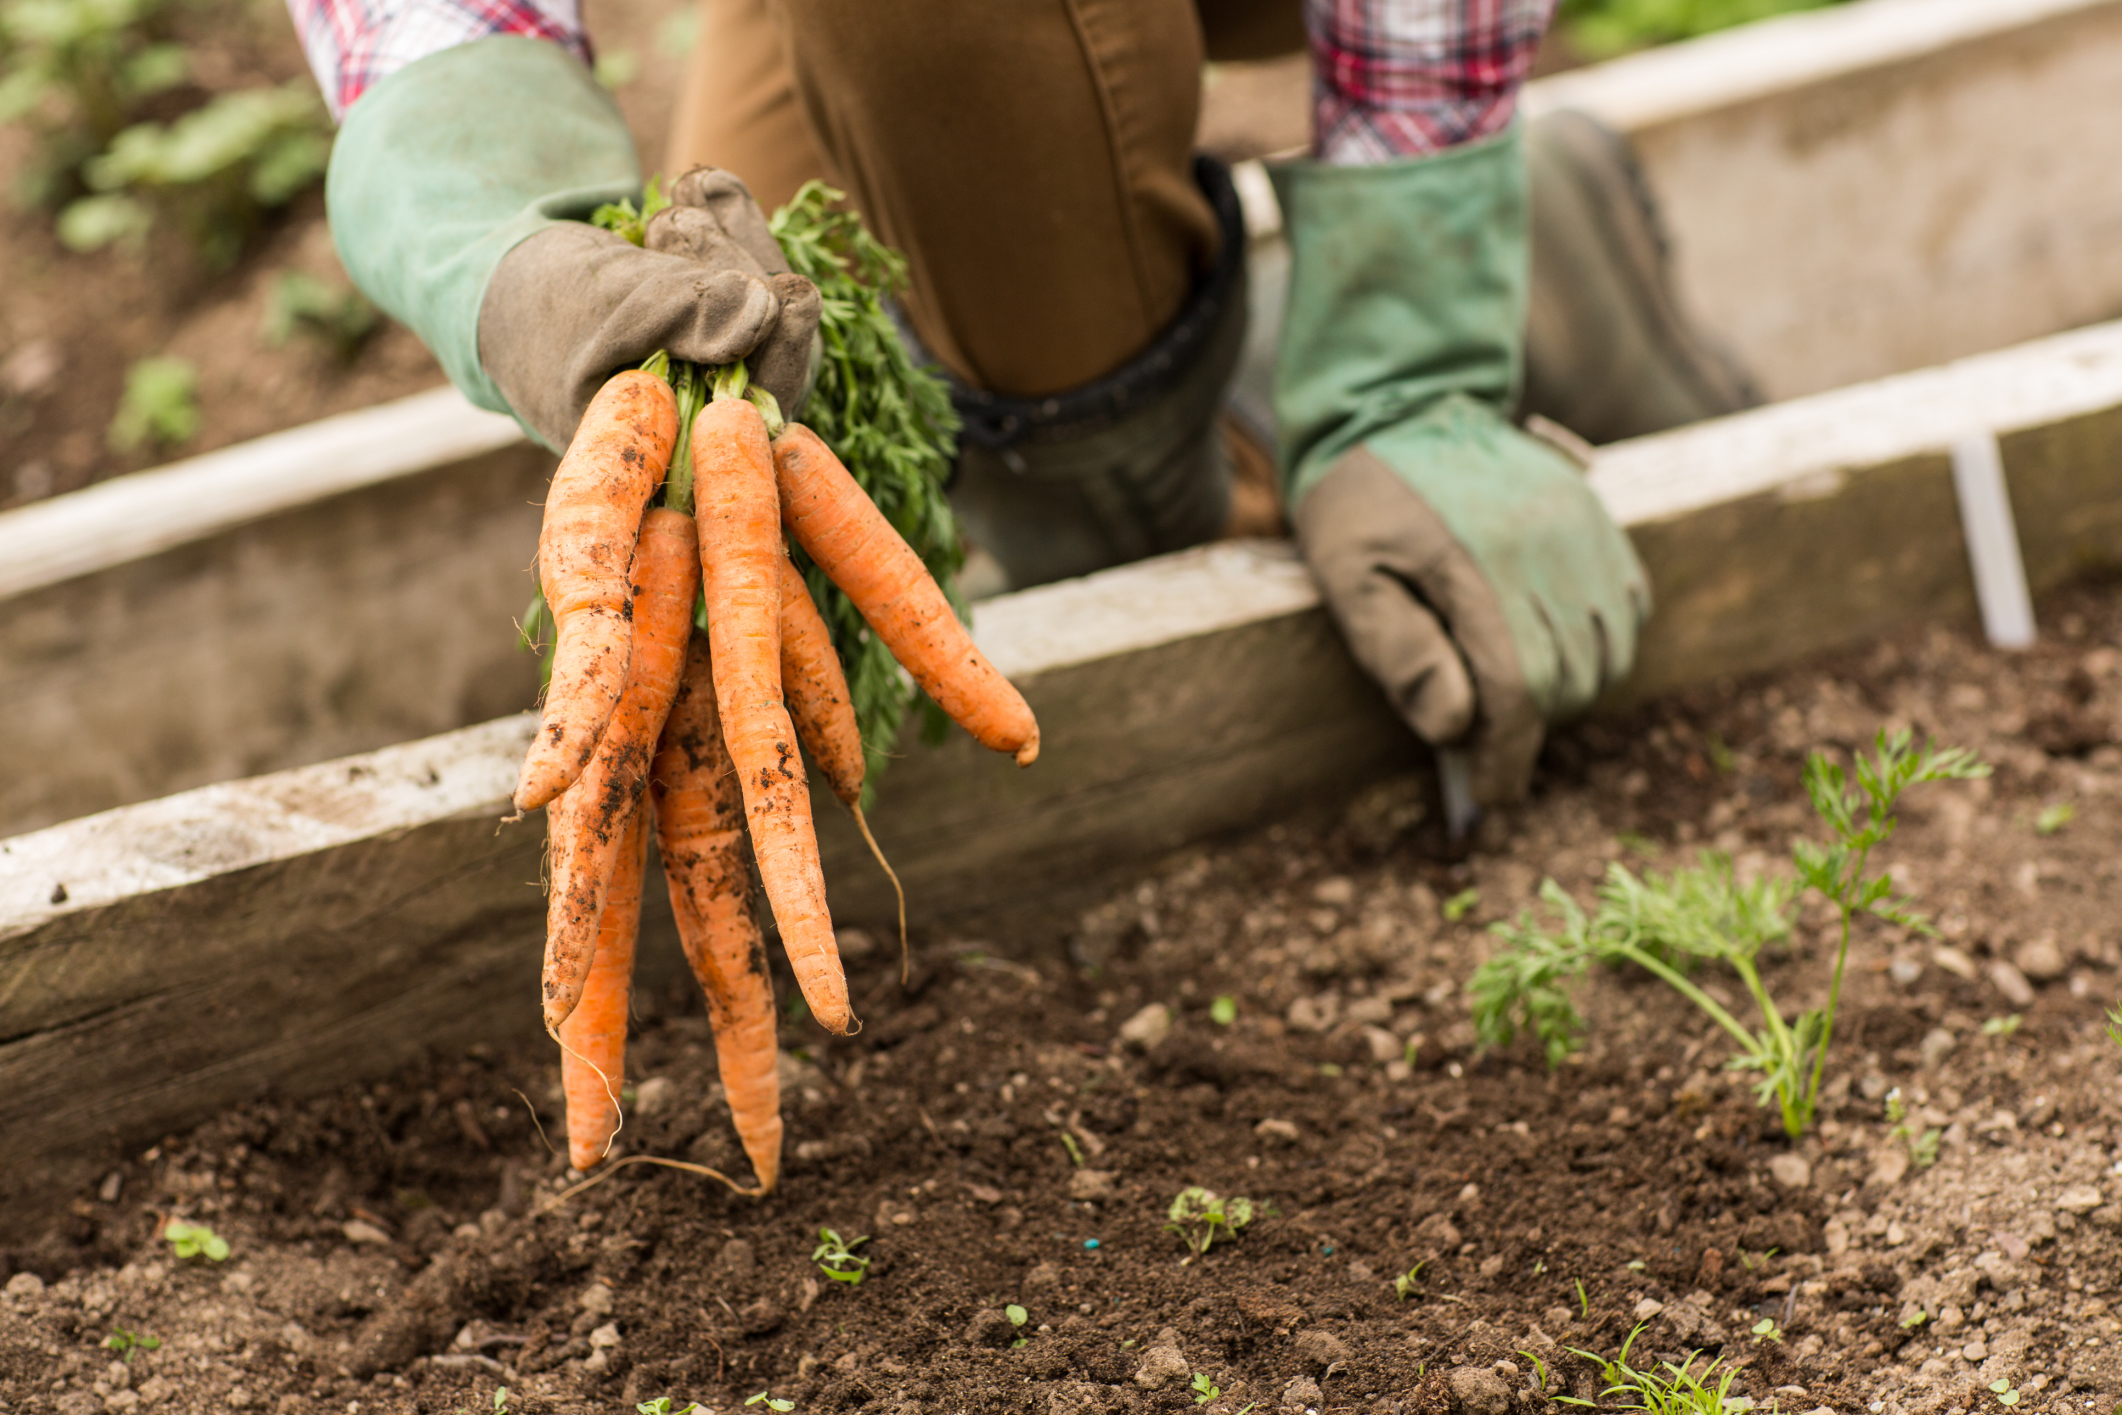 Pros & Cons of Growing Your Own Fruits & Vegetables | LIVESTRONG.COM